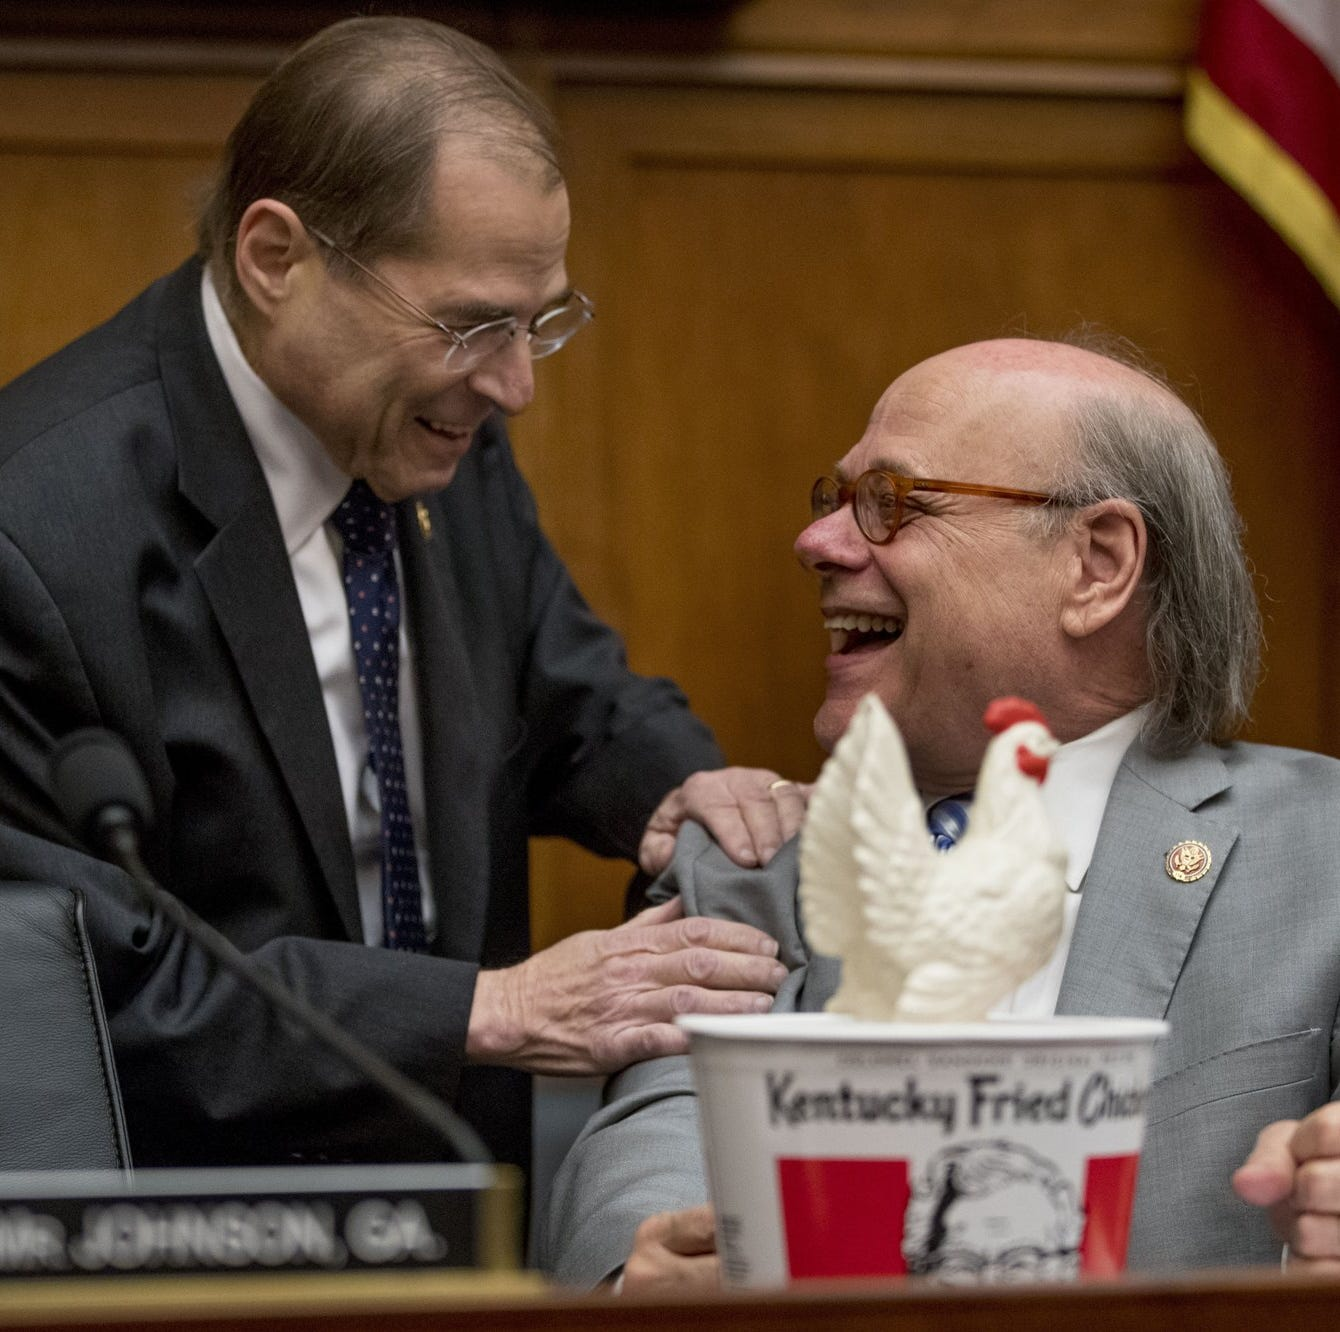 Rep. Steve Cohen brought a fake chicken for William Barr's empty seat at House committee hearing